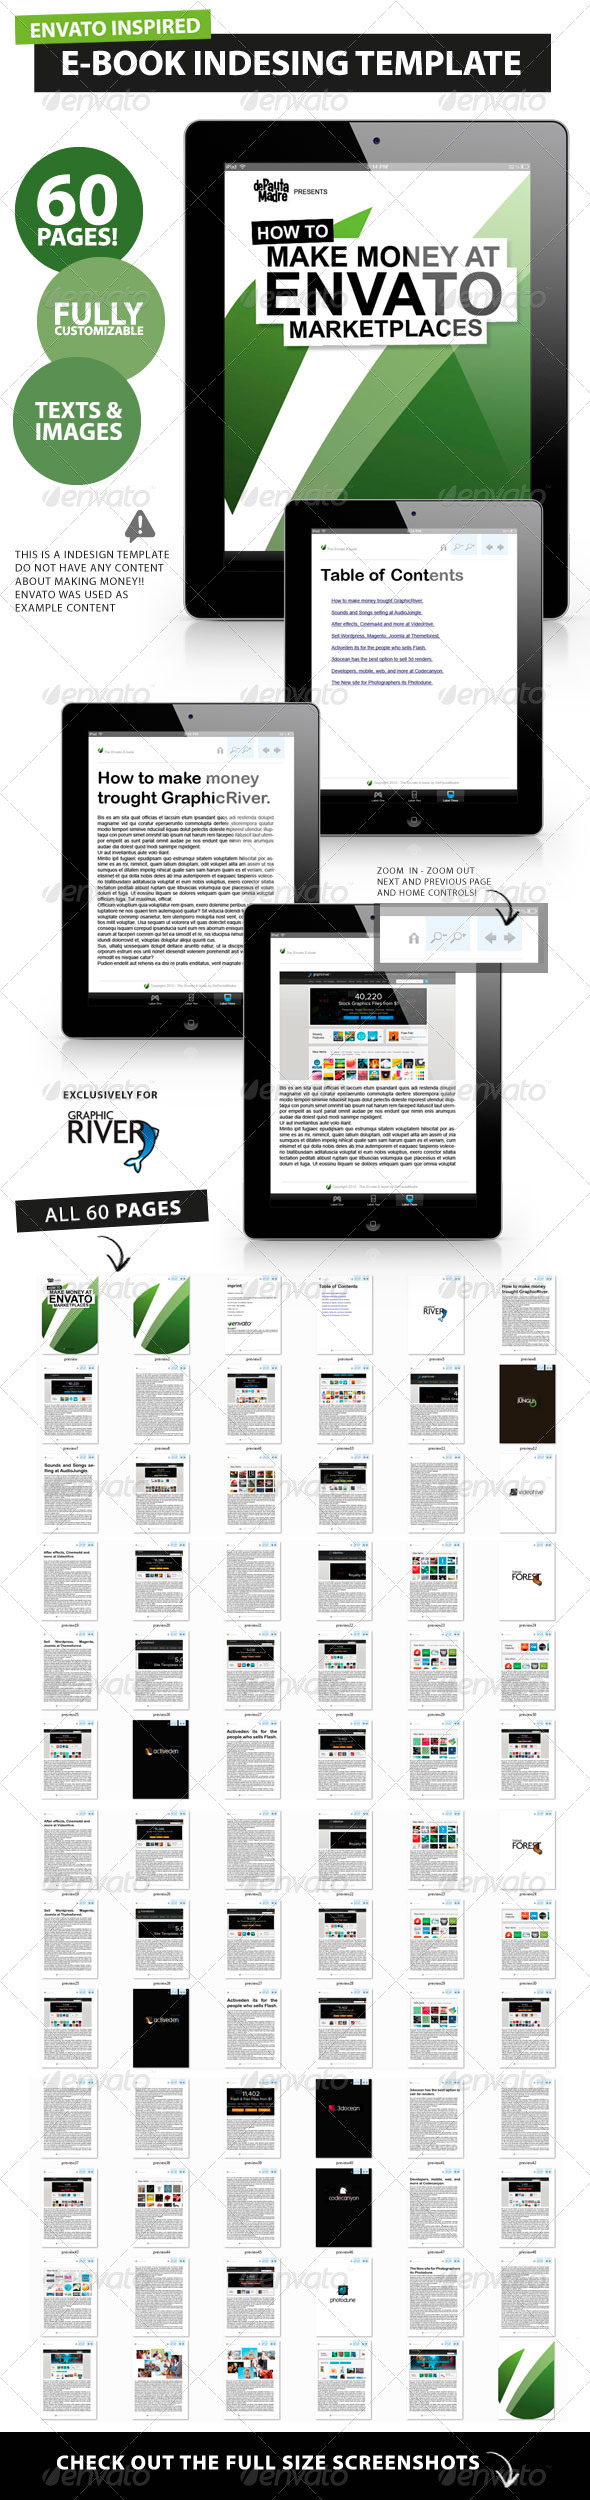 60 pages e book magazine book indesign template by depautamadre